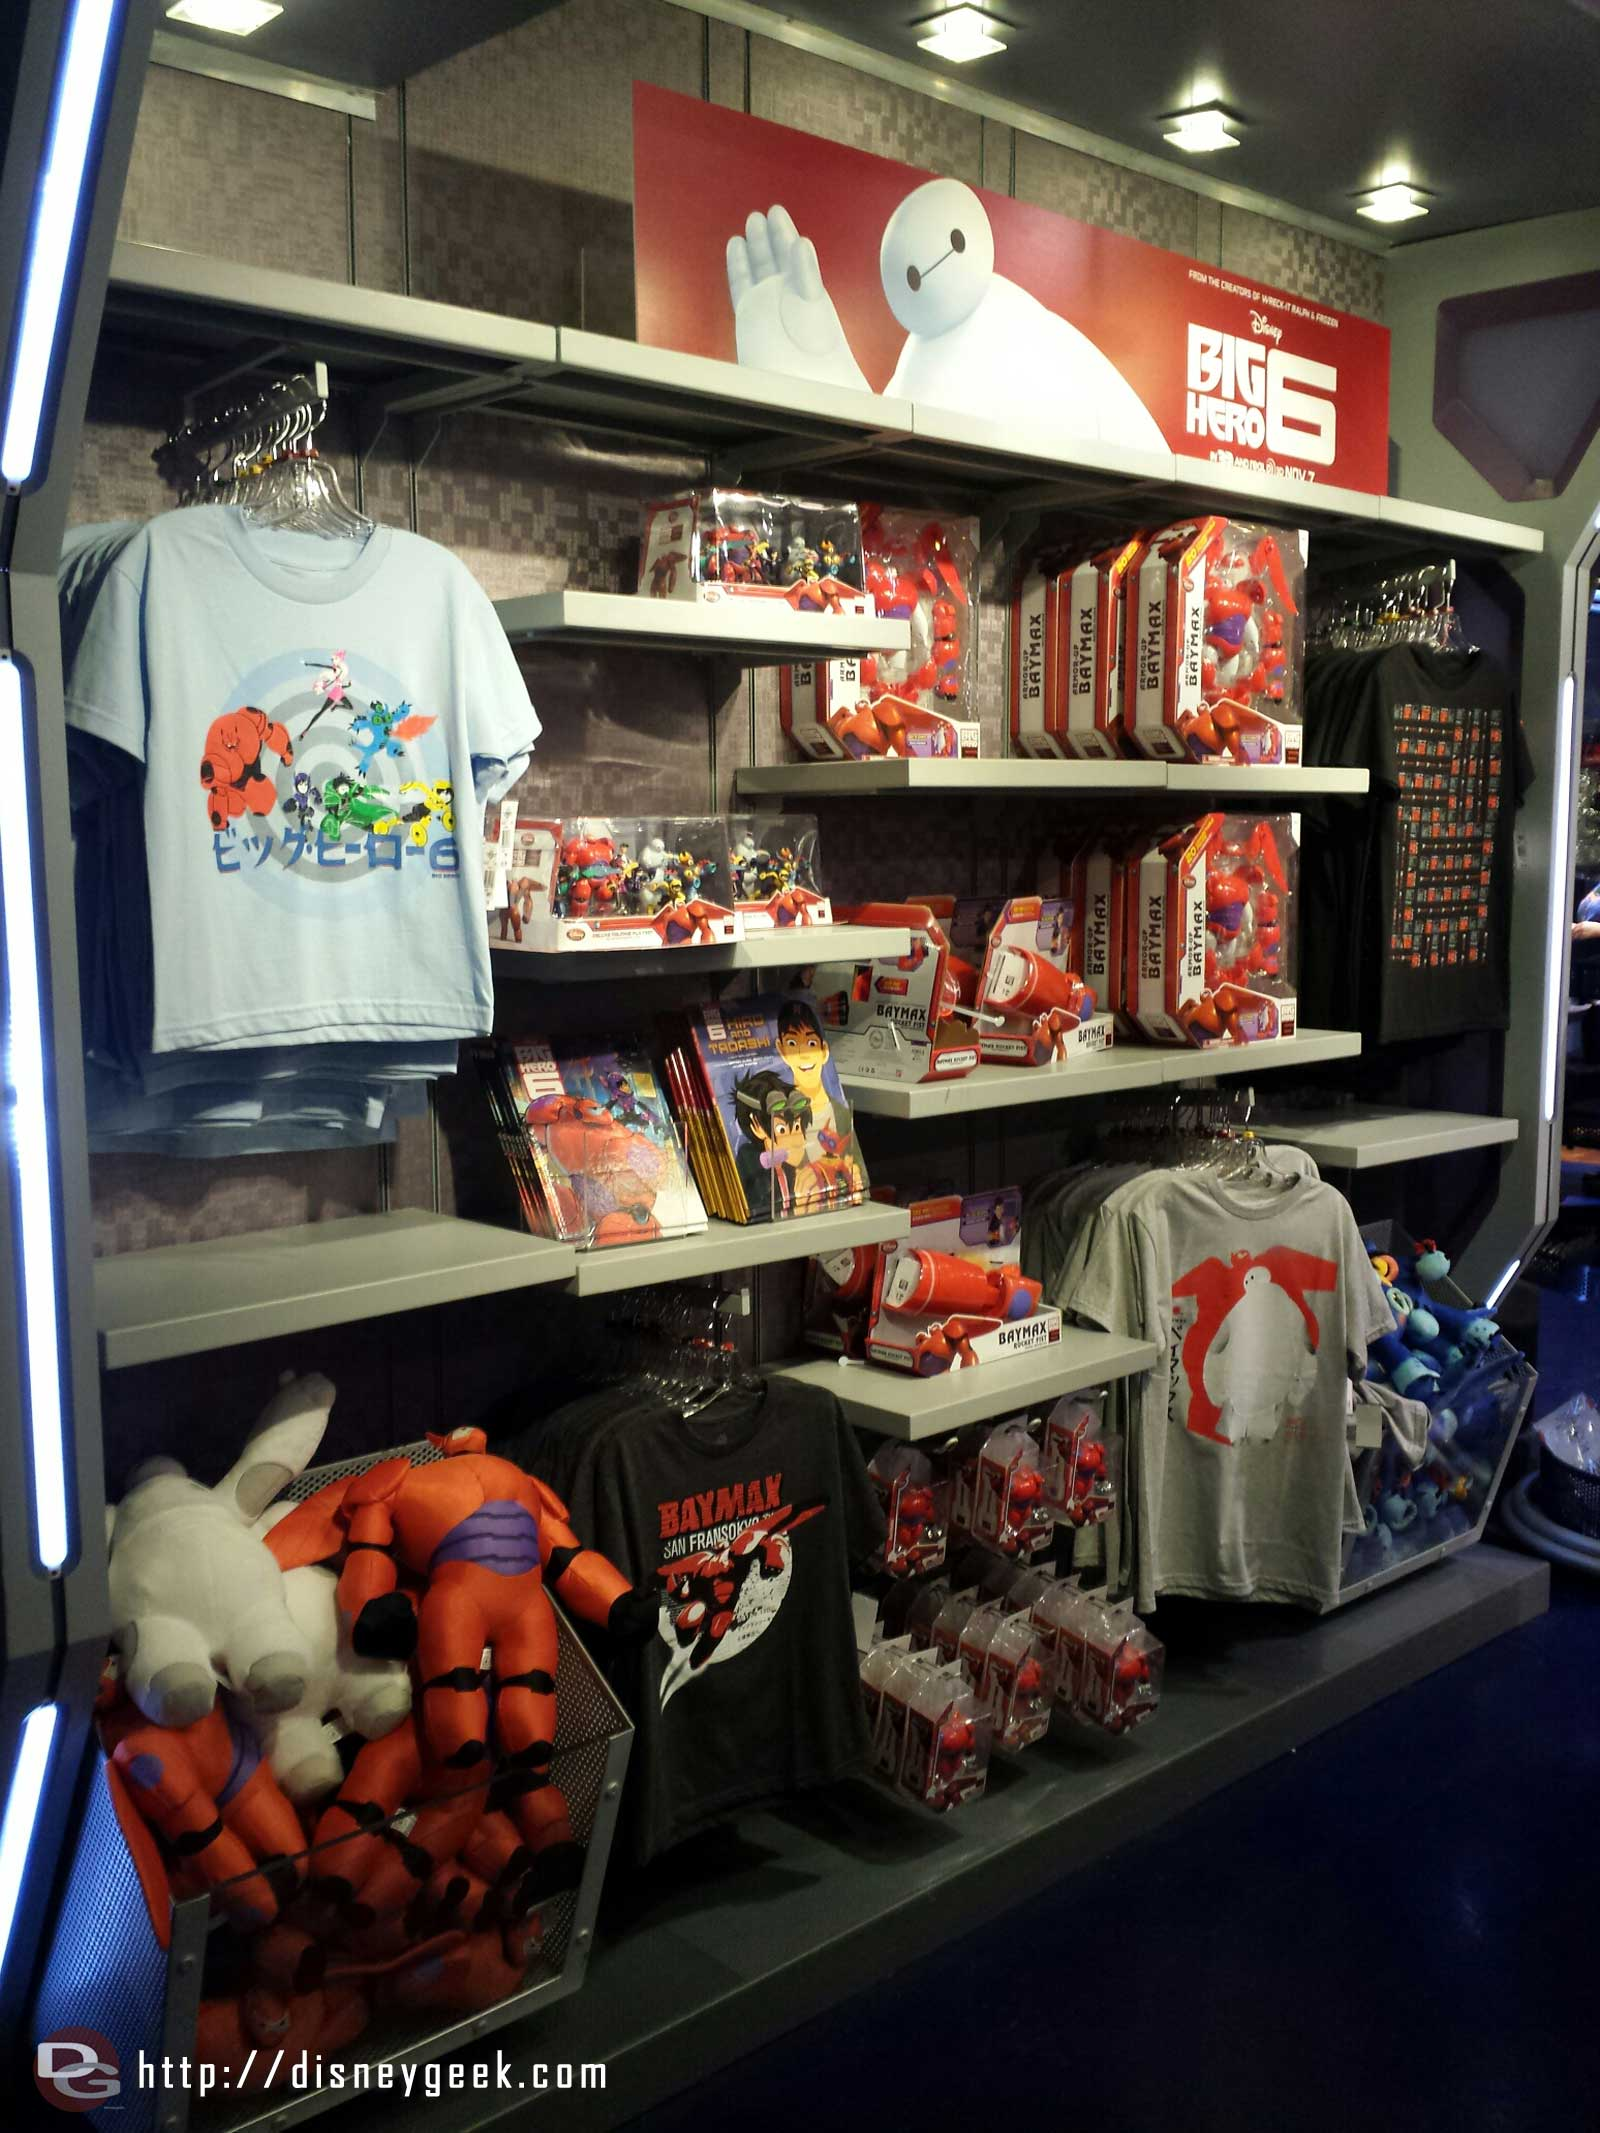 #BigHero6 merchandise on the Star Traders